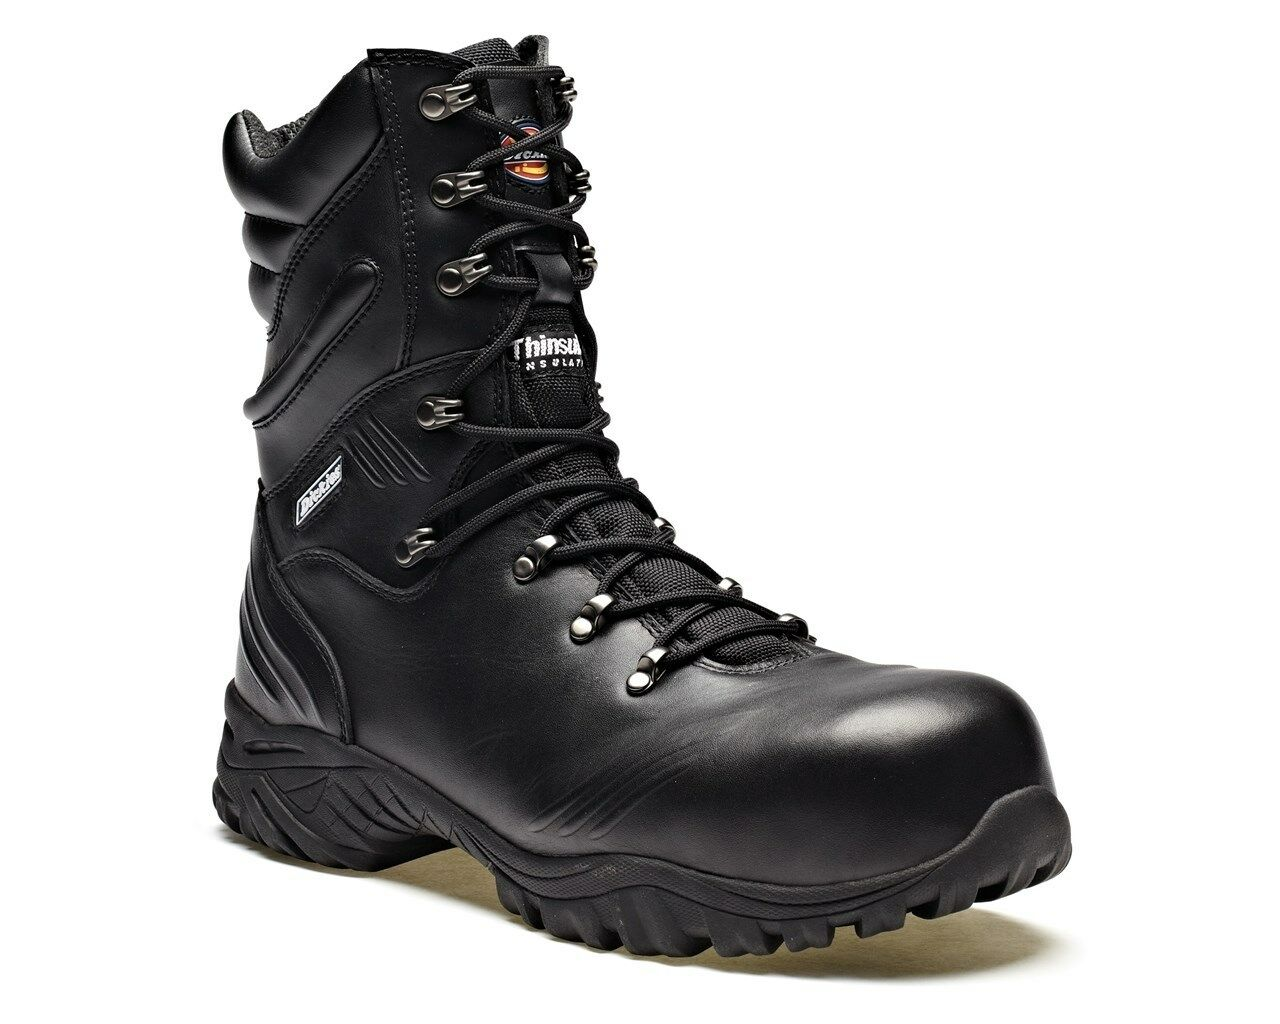 DICKIES URBAN HI SAFETY WORK BOOTS LEATHER FC9507 BLACK